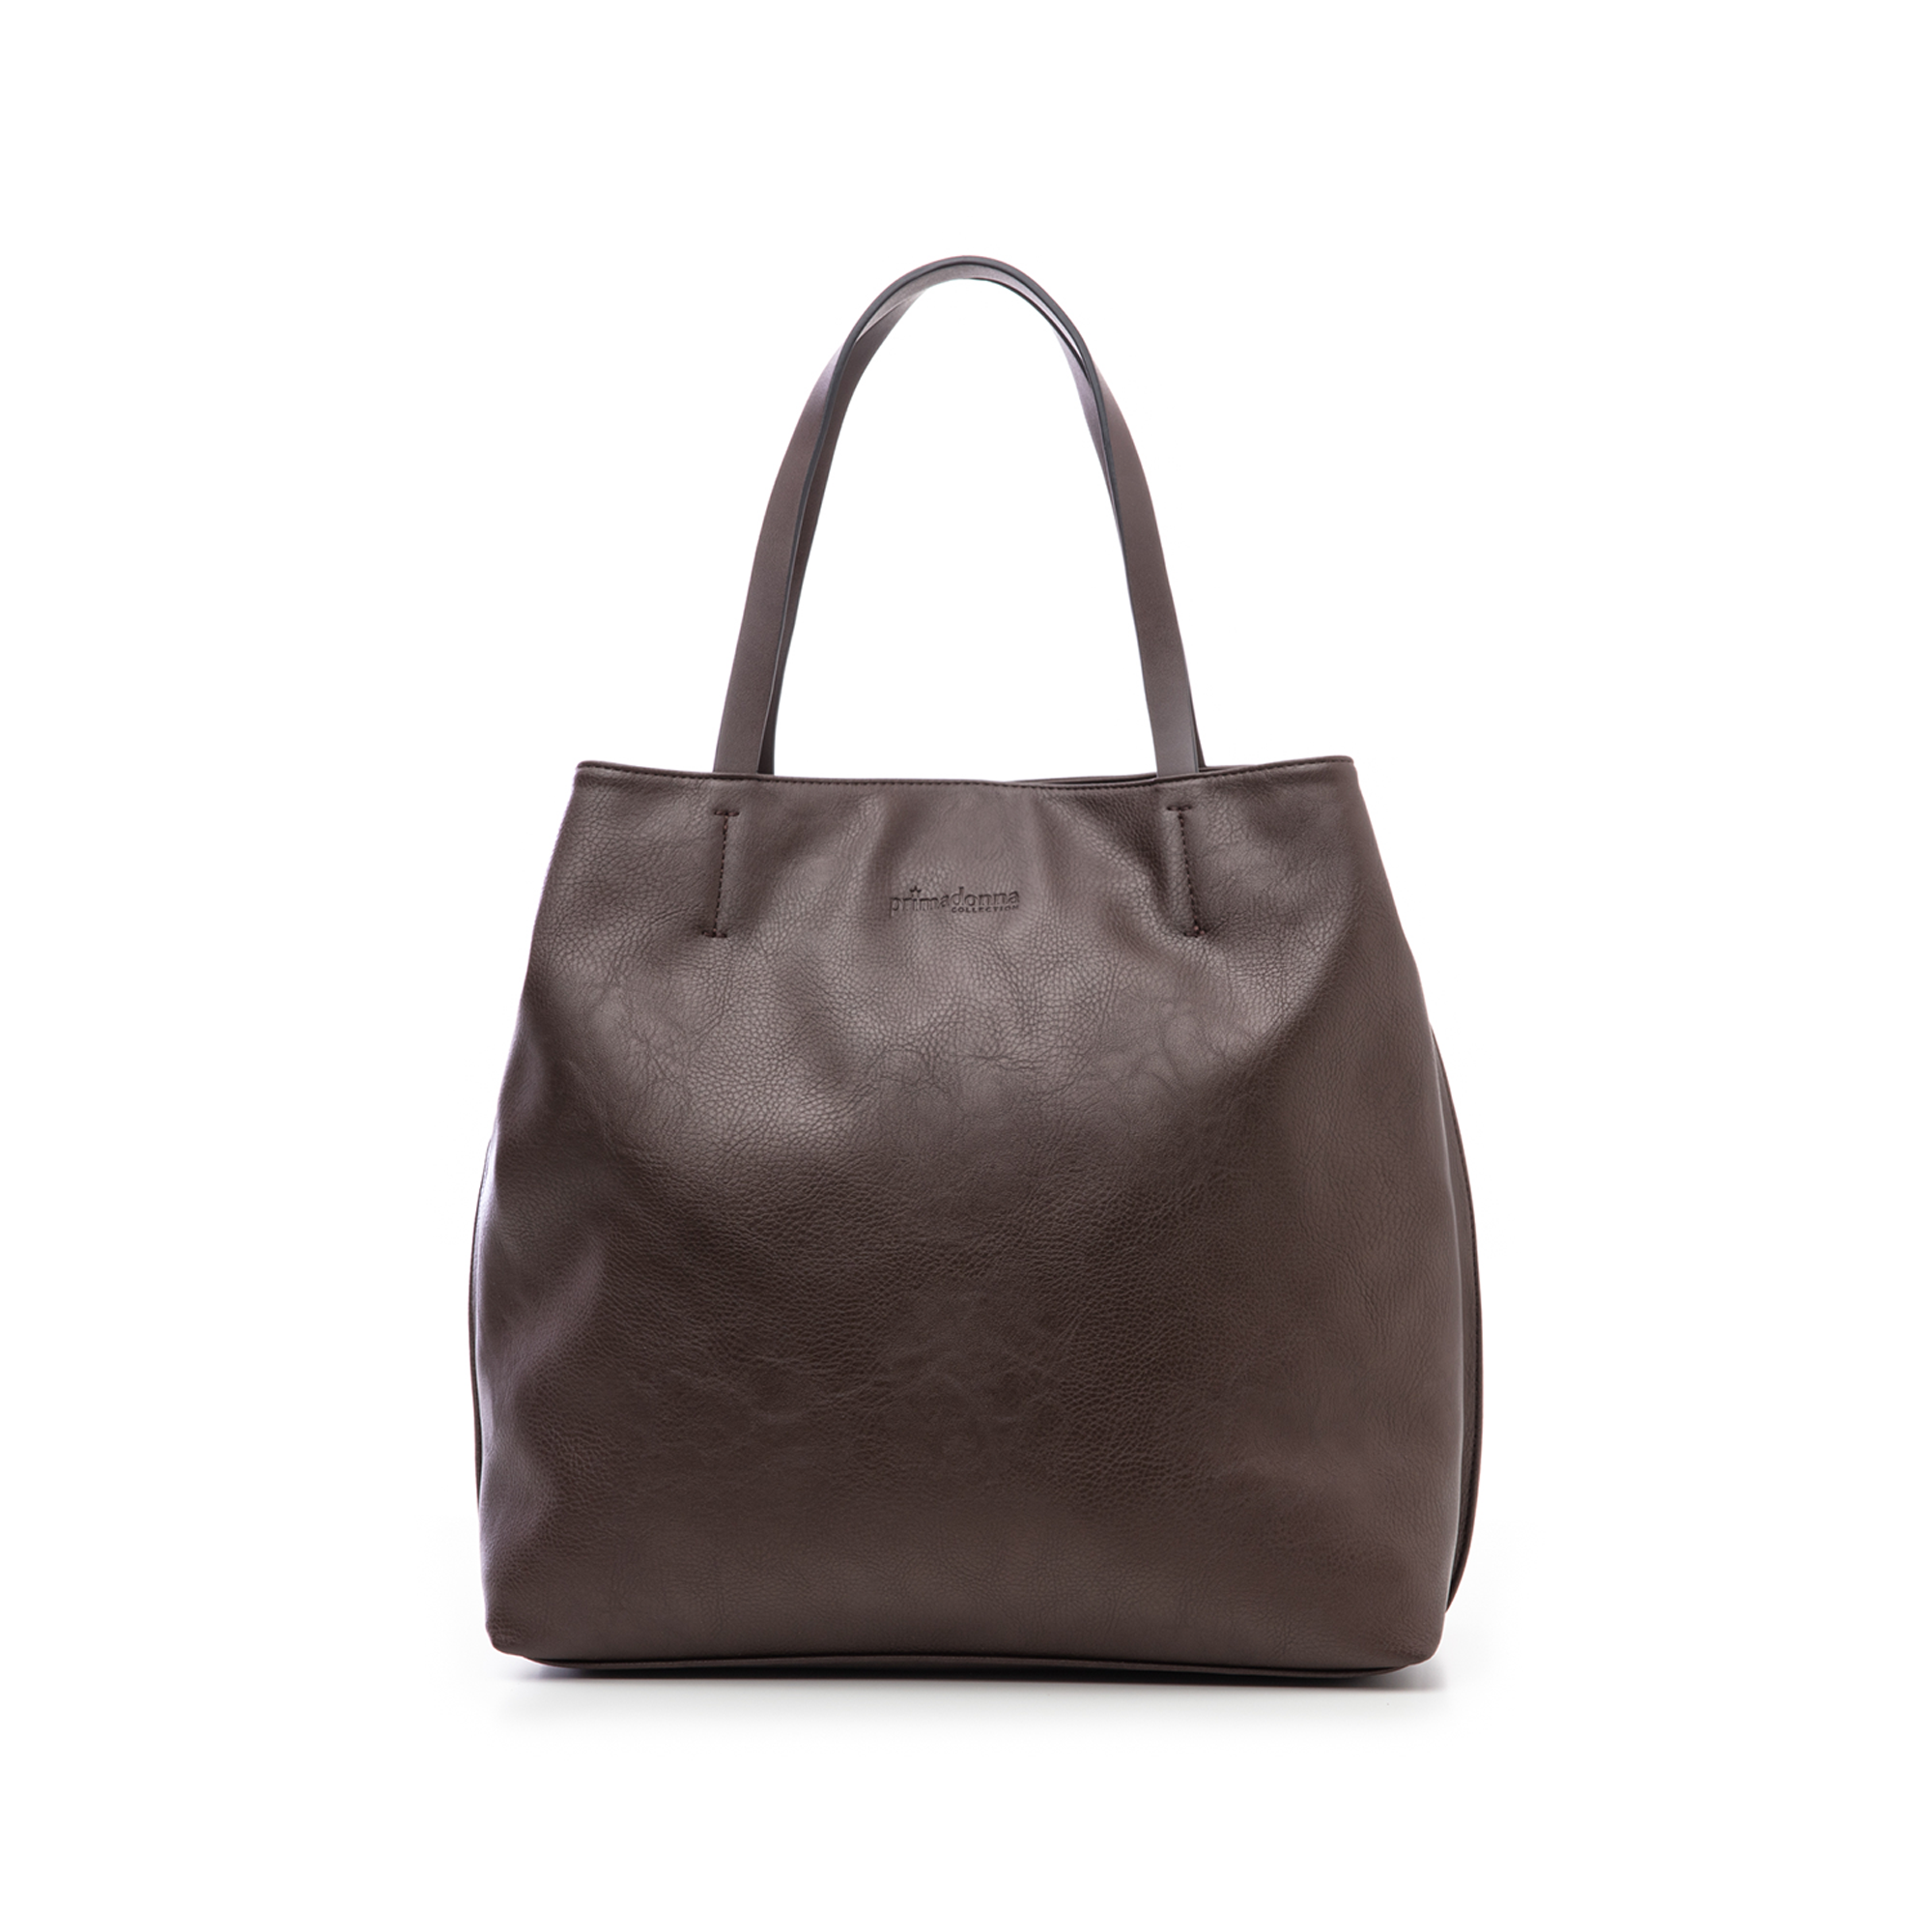 Borsa grande marrone in eco-pelle